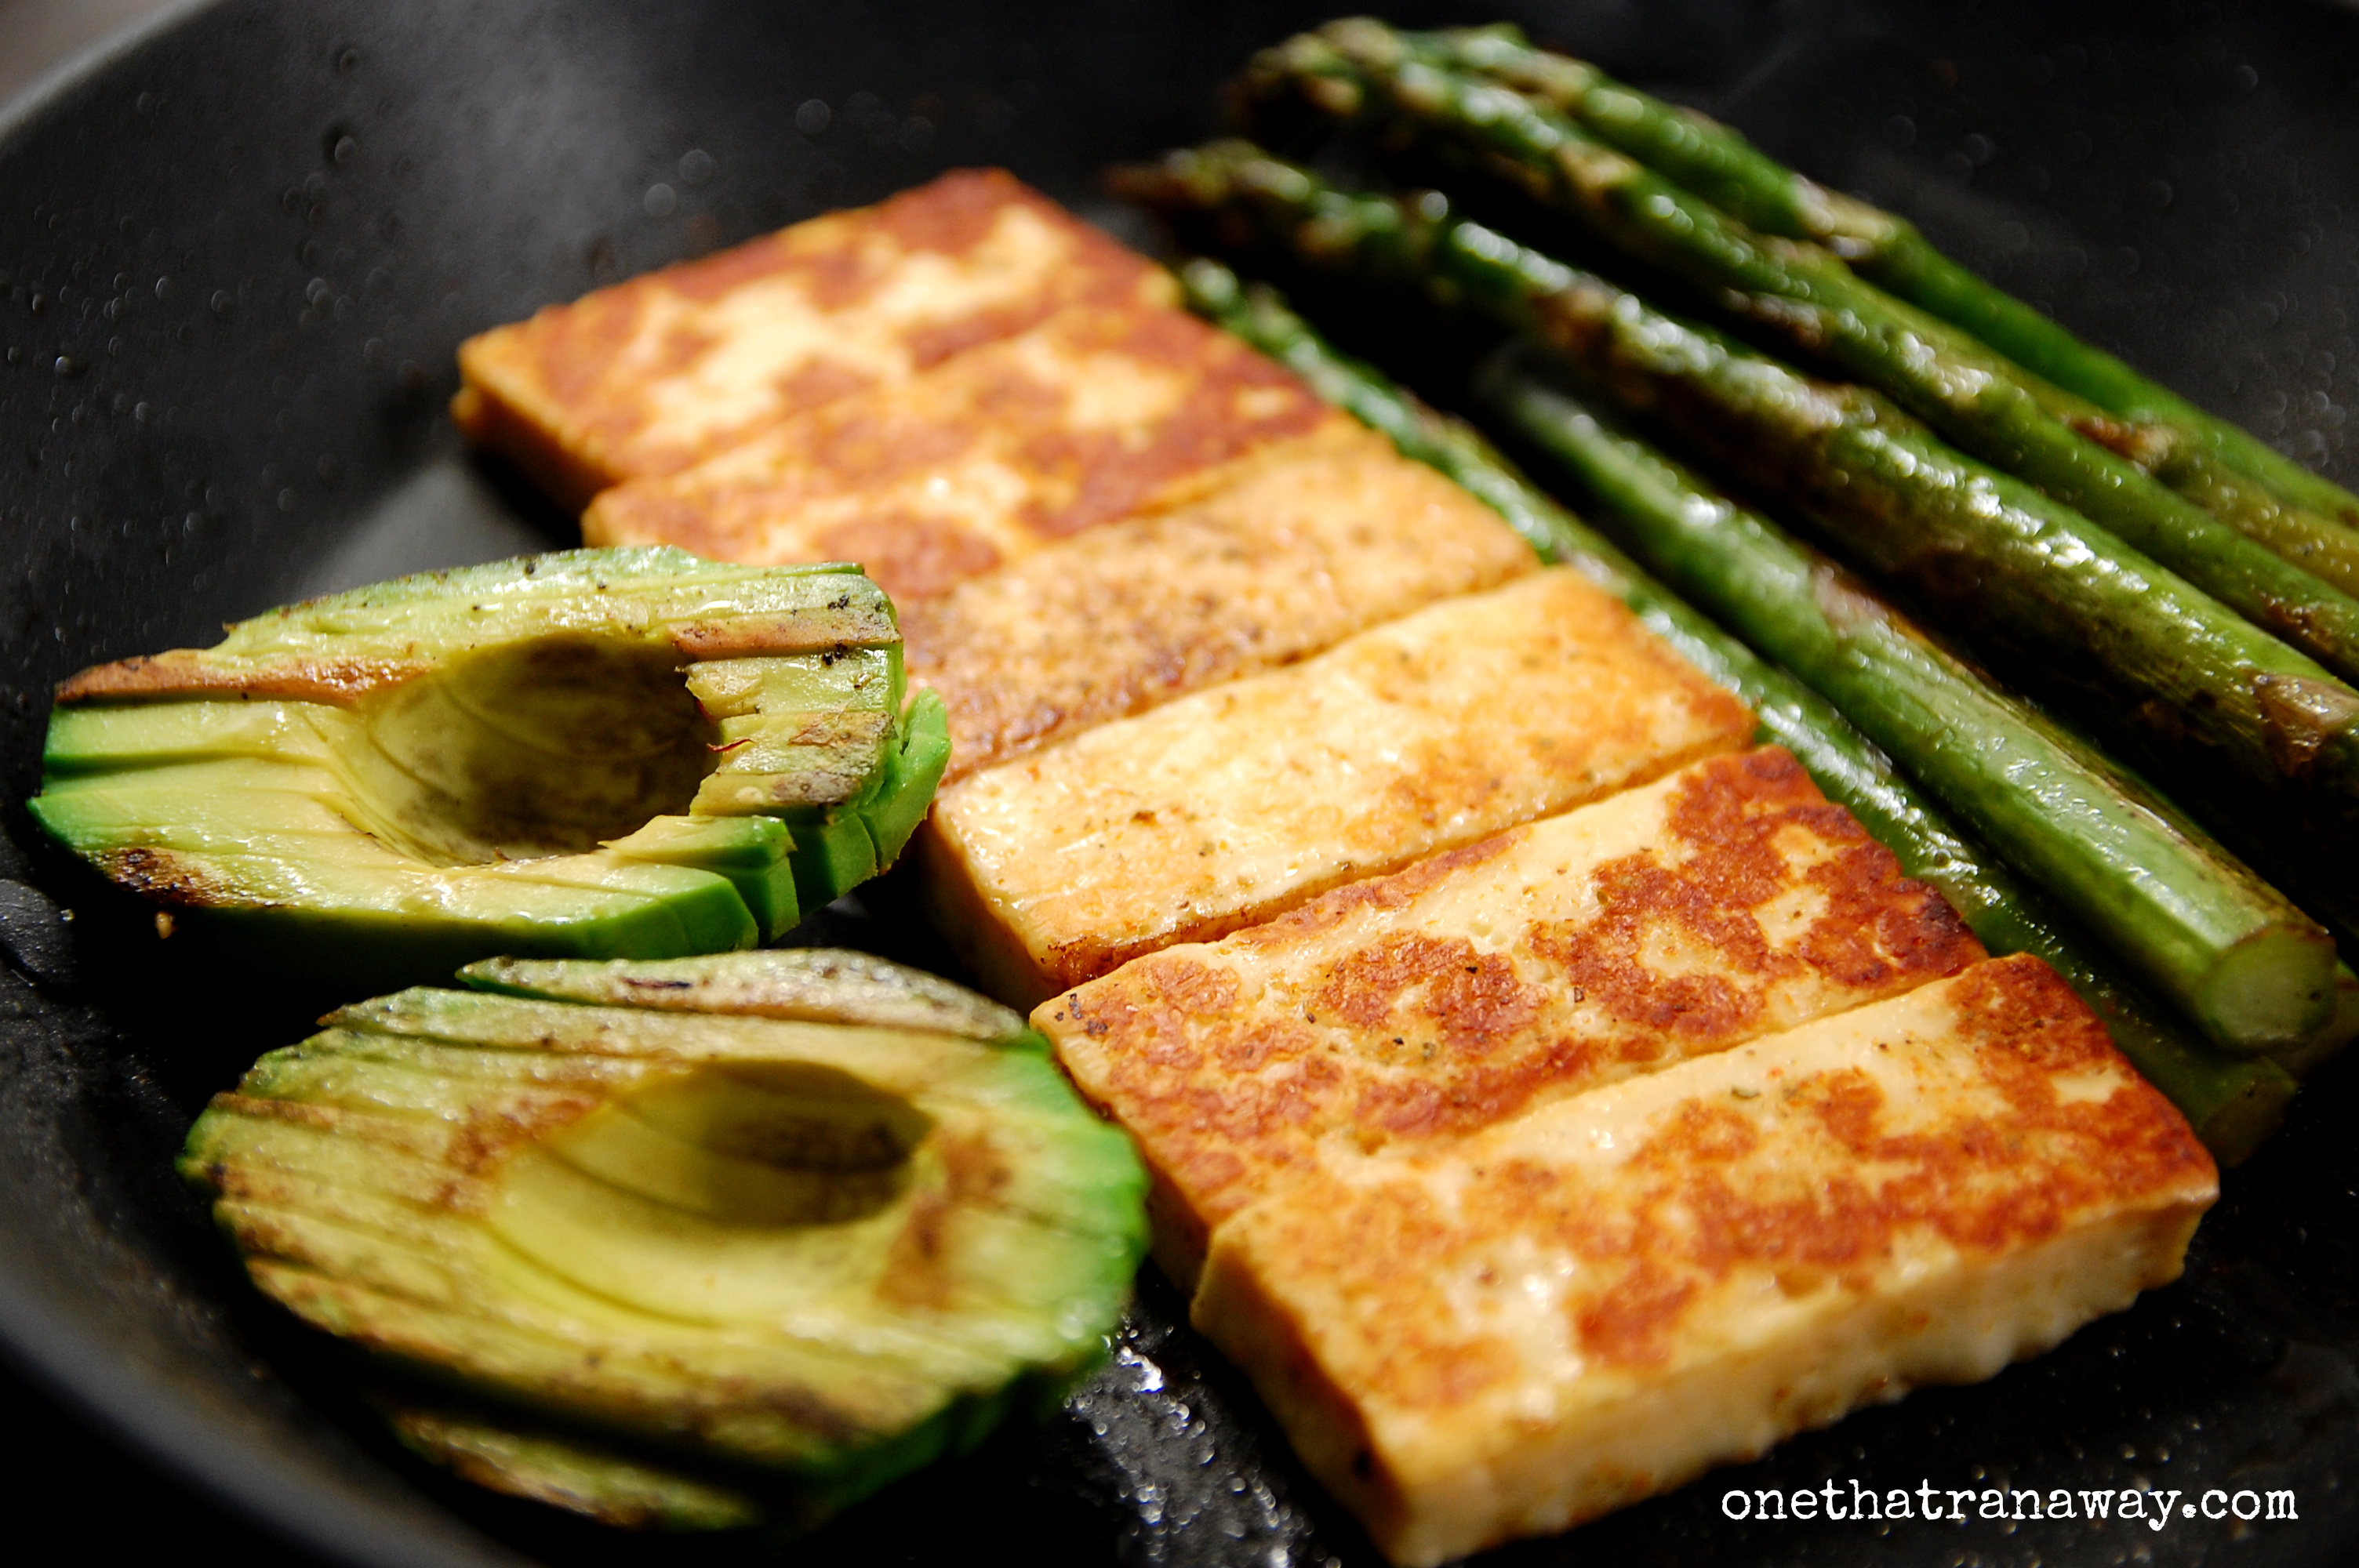 fried halloumi cheese, asparagus and avocado in a pan